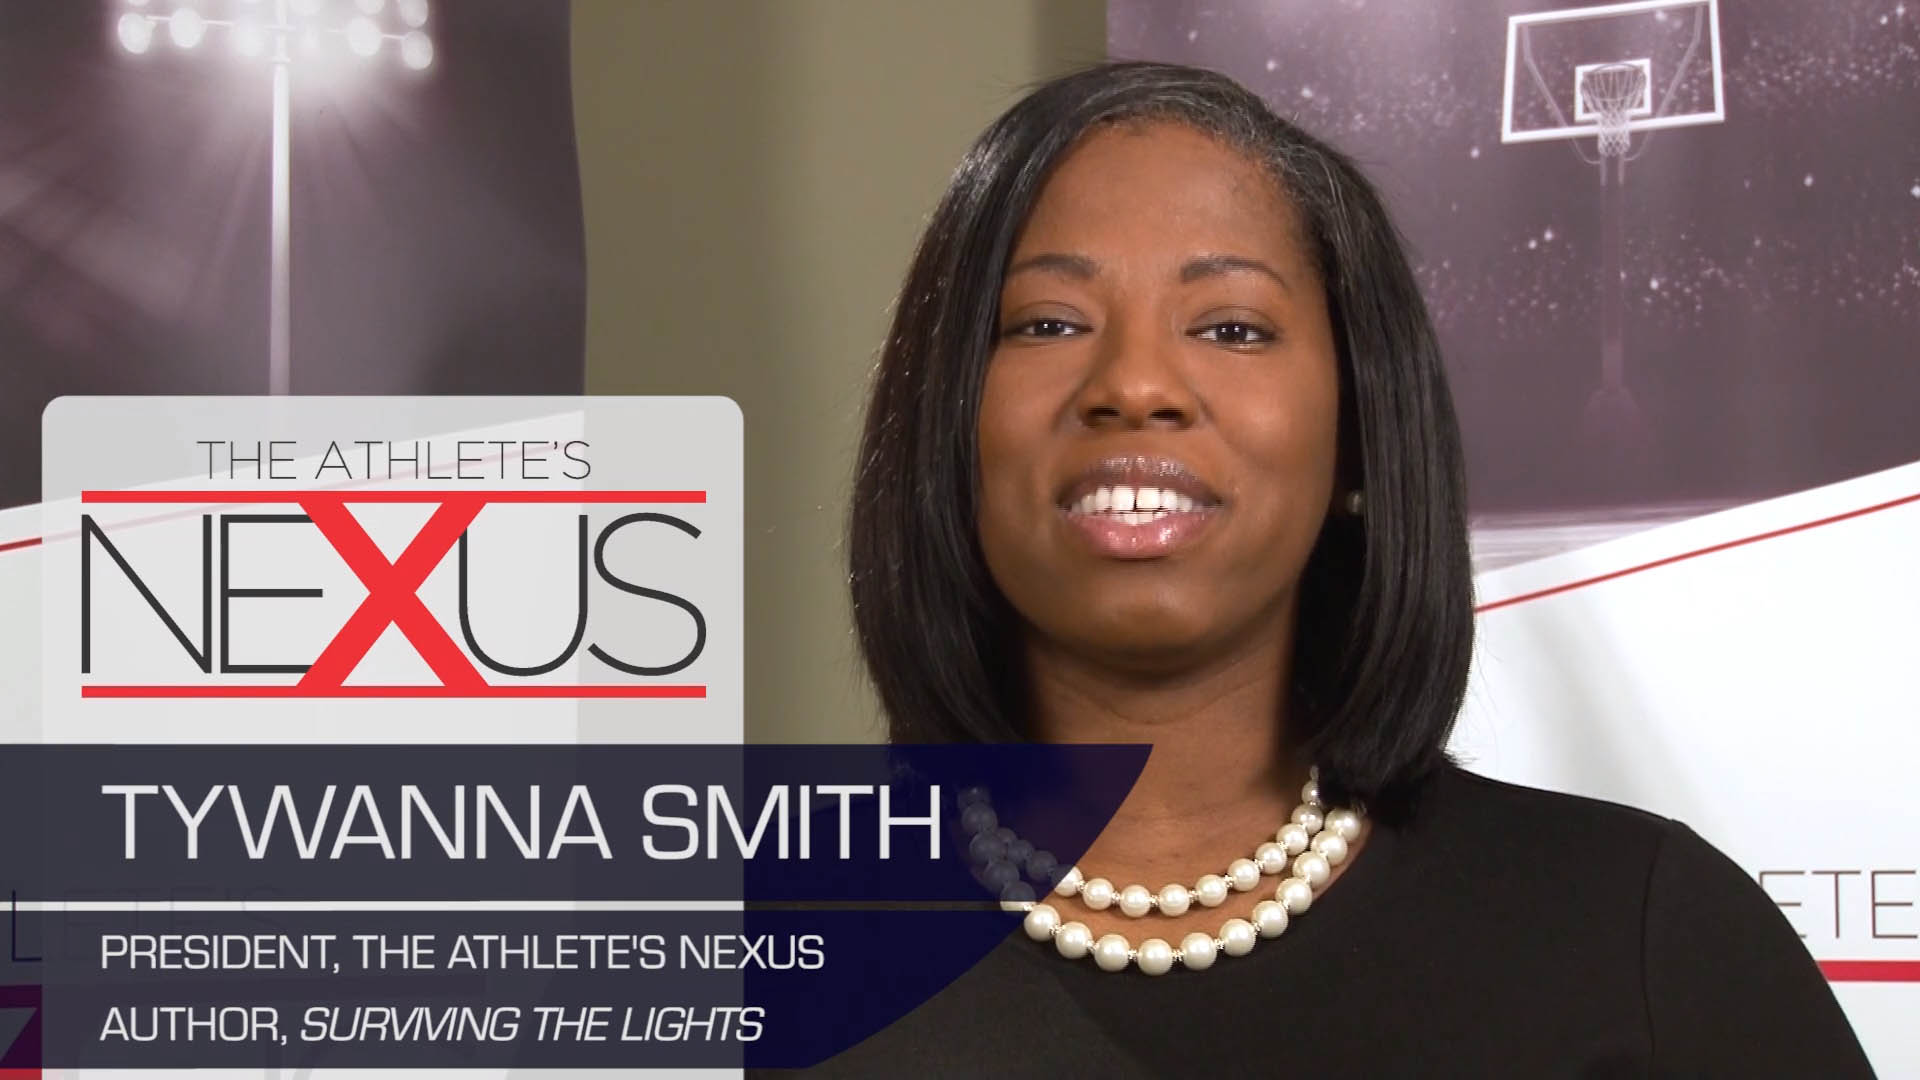 The Athlete's Nexus  |  Marketing video for a consulting business